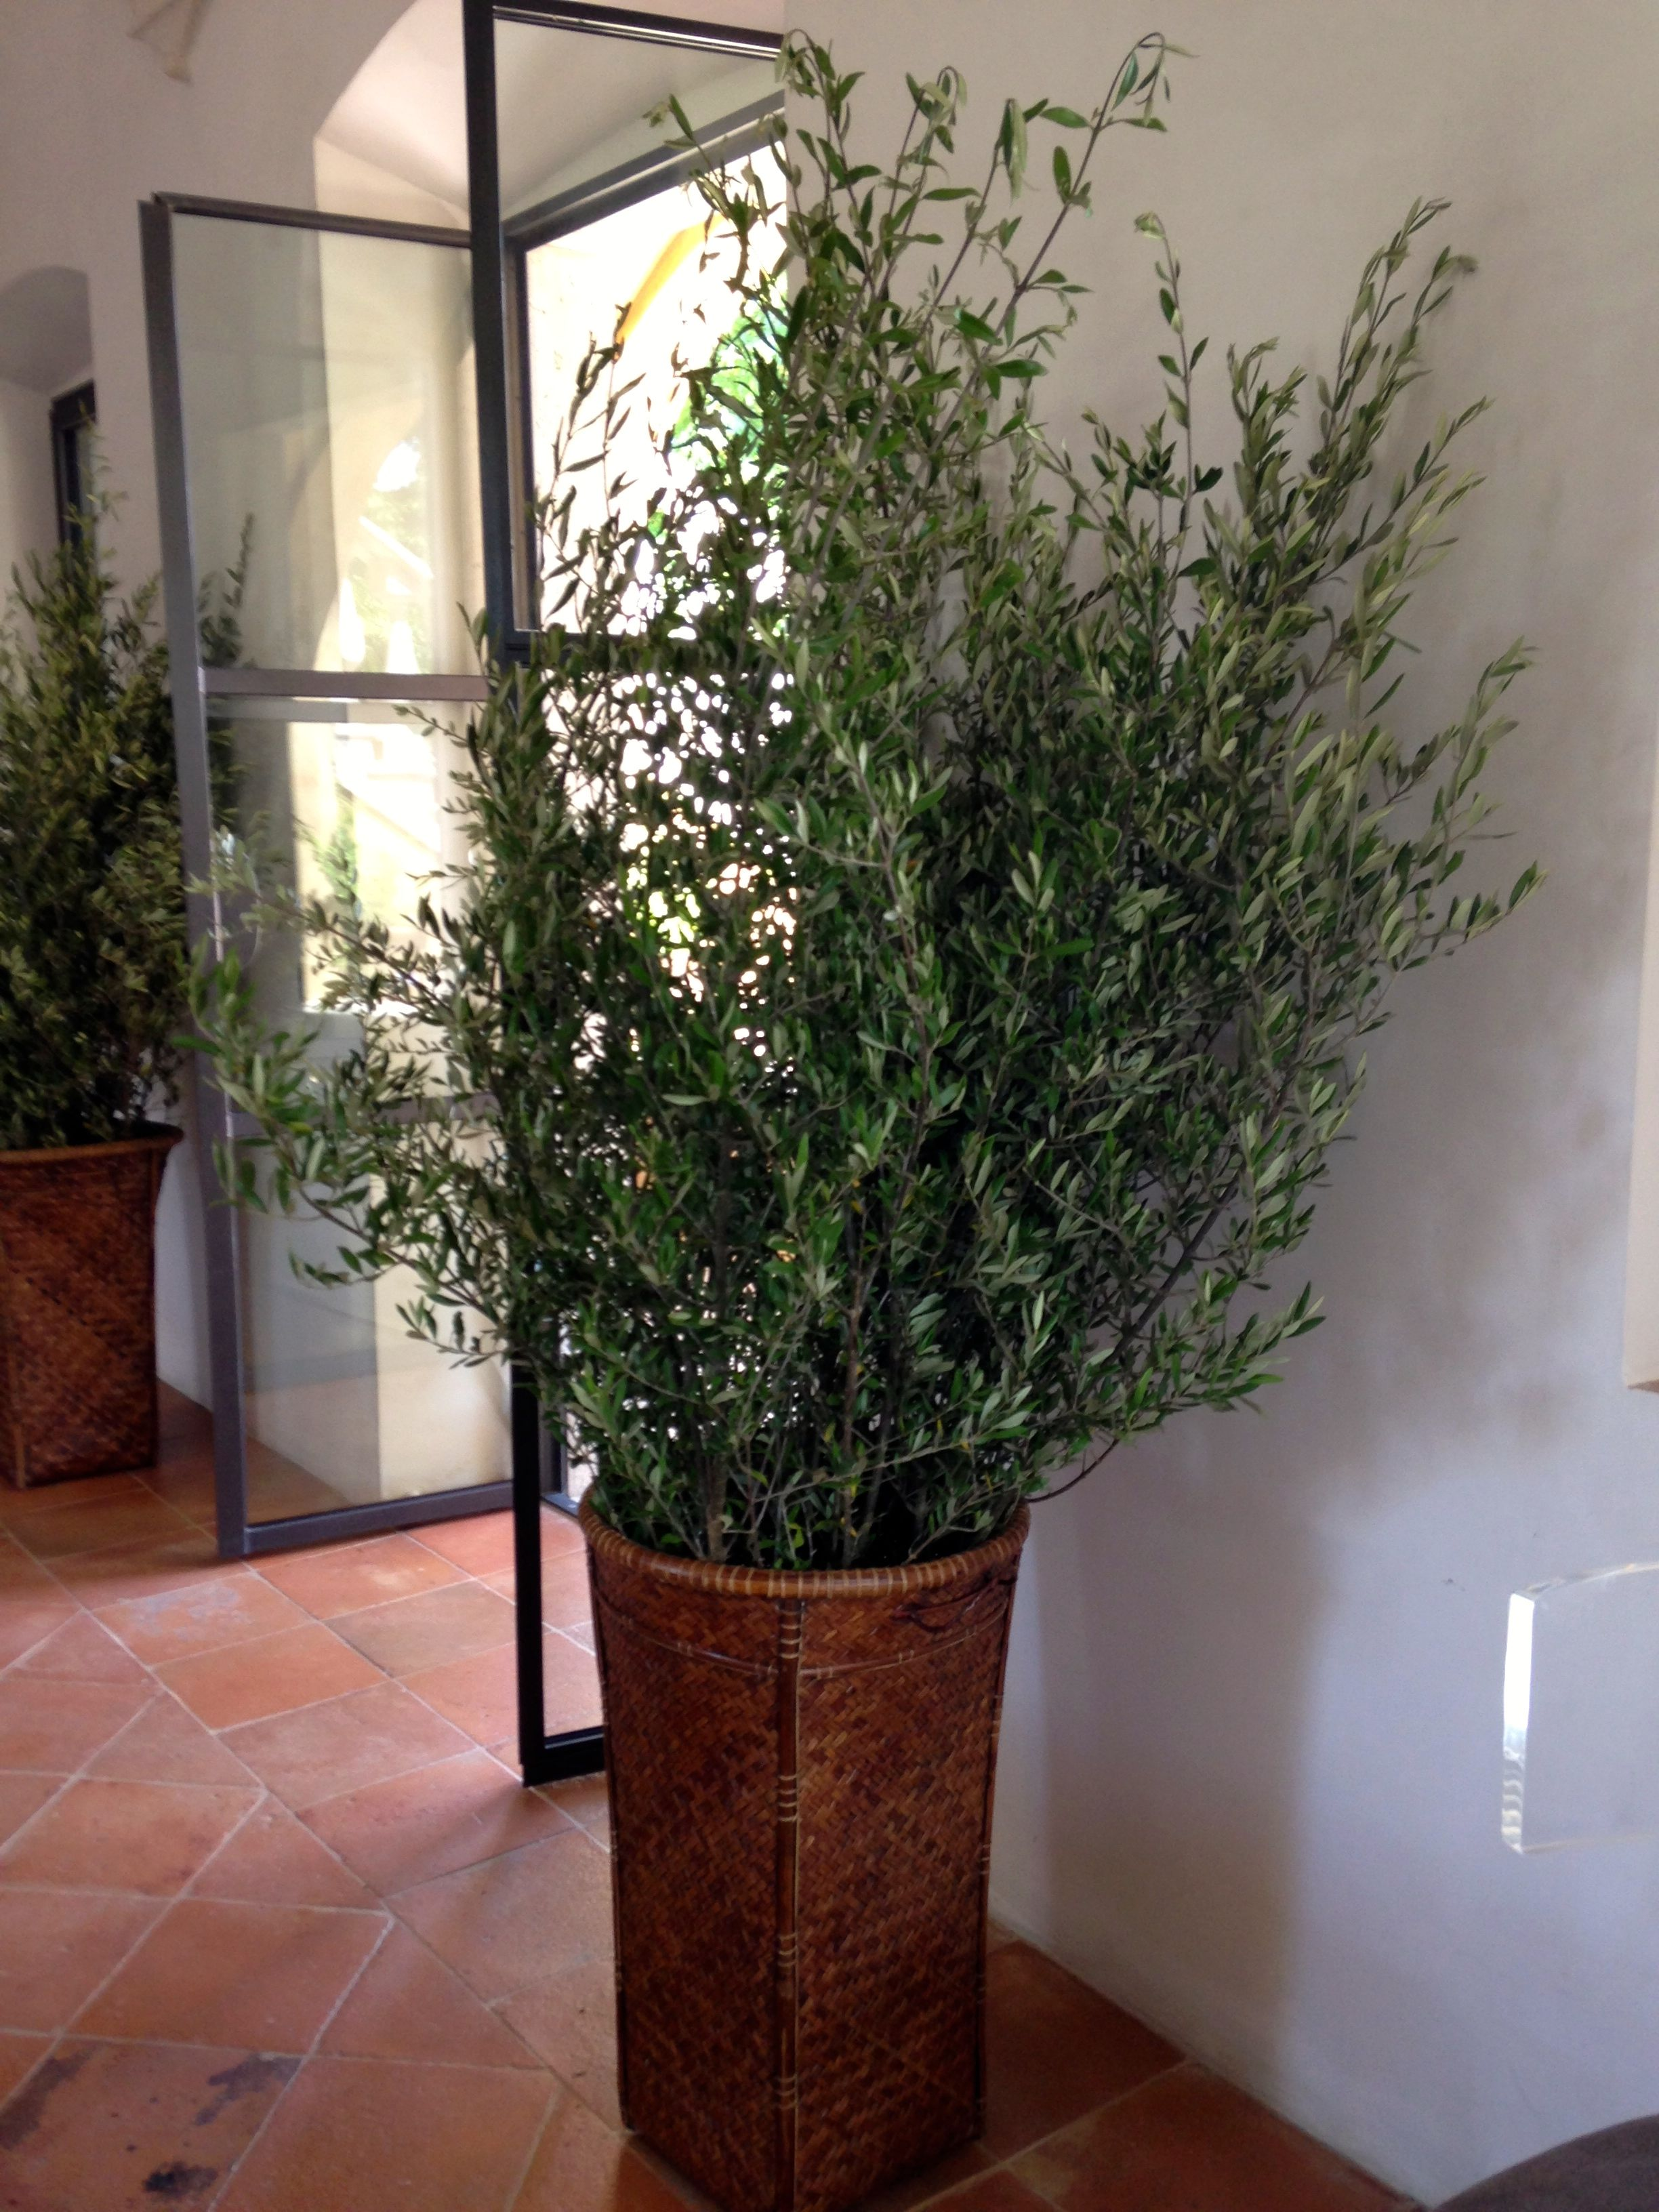 Inside castello di reschio i especially loved the idea that something as simple as cutting off olive branches and putting them in baskets and vases throughout the house made each room reviewsmspy